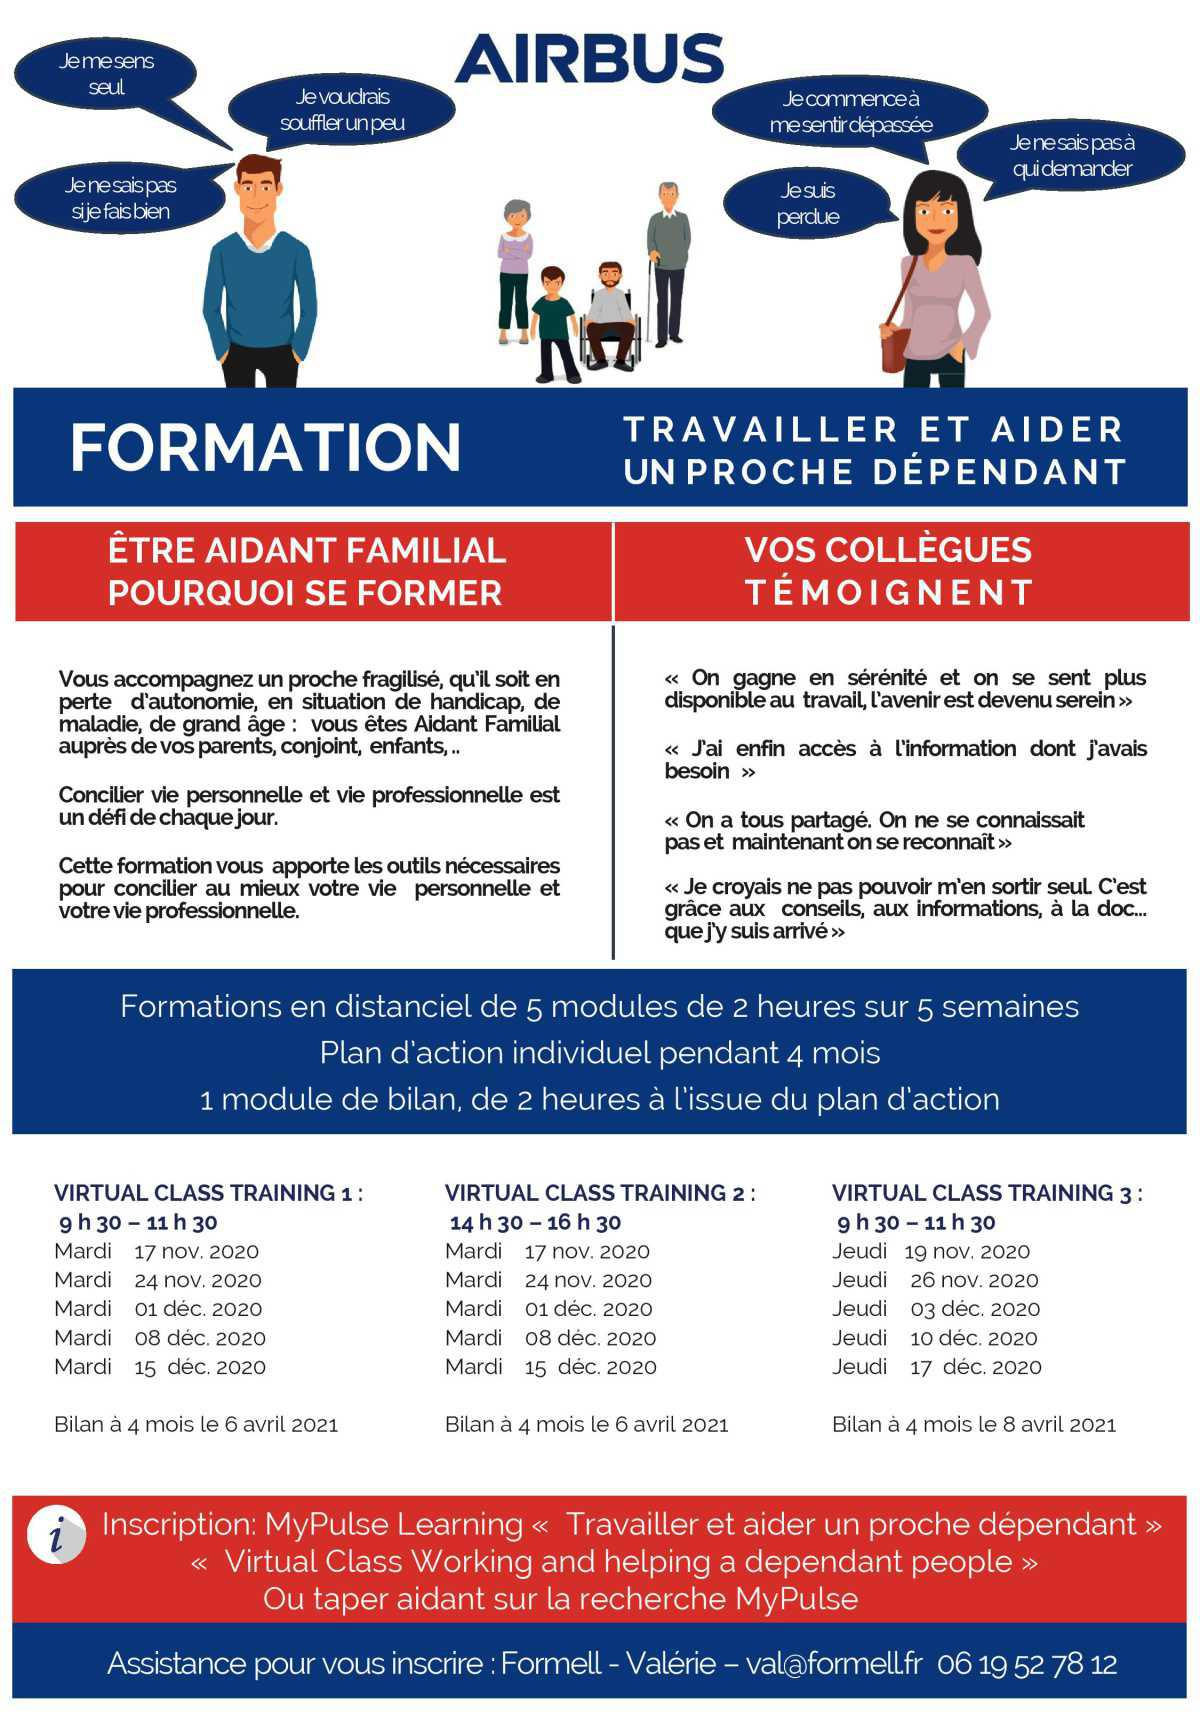 Aidant Familial : Des formations sont disponibles sous My Pulse Learning